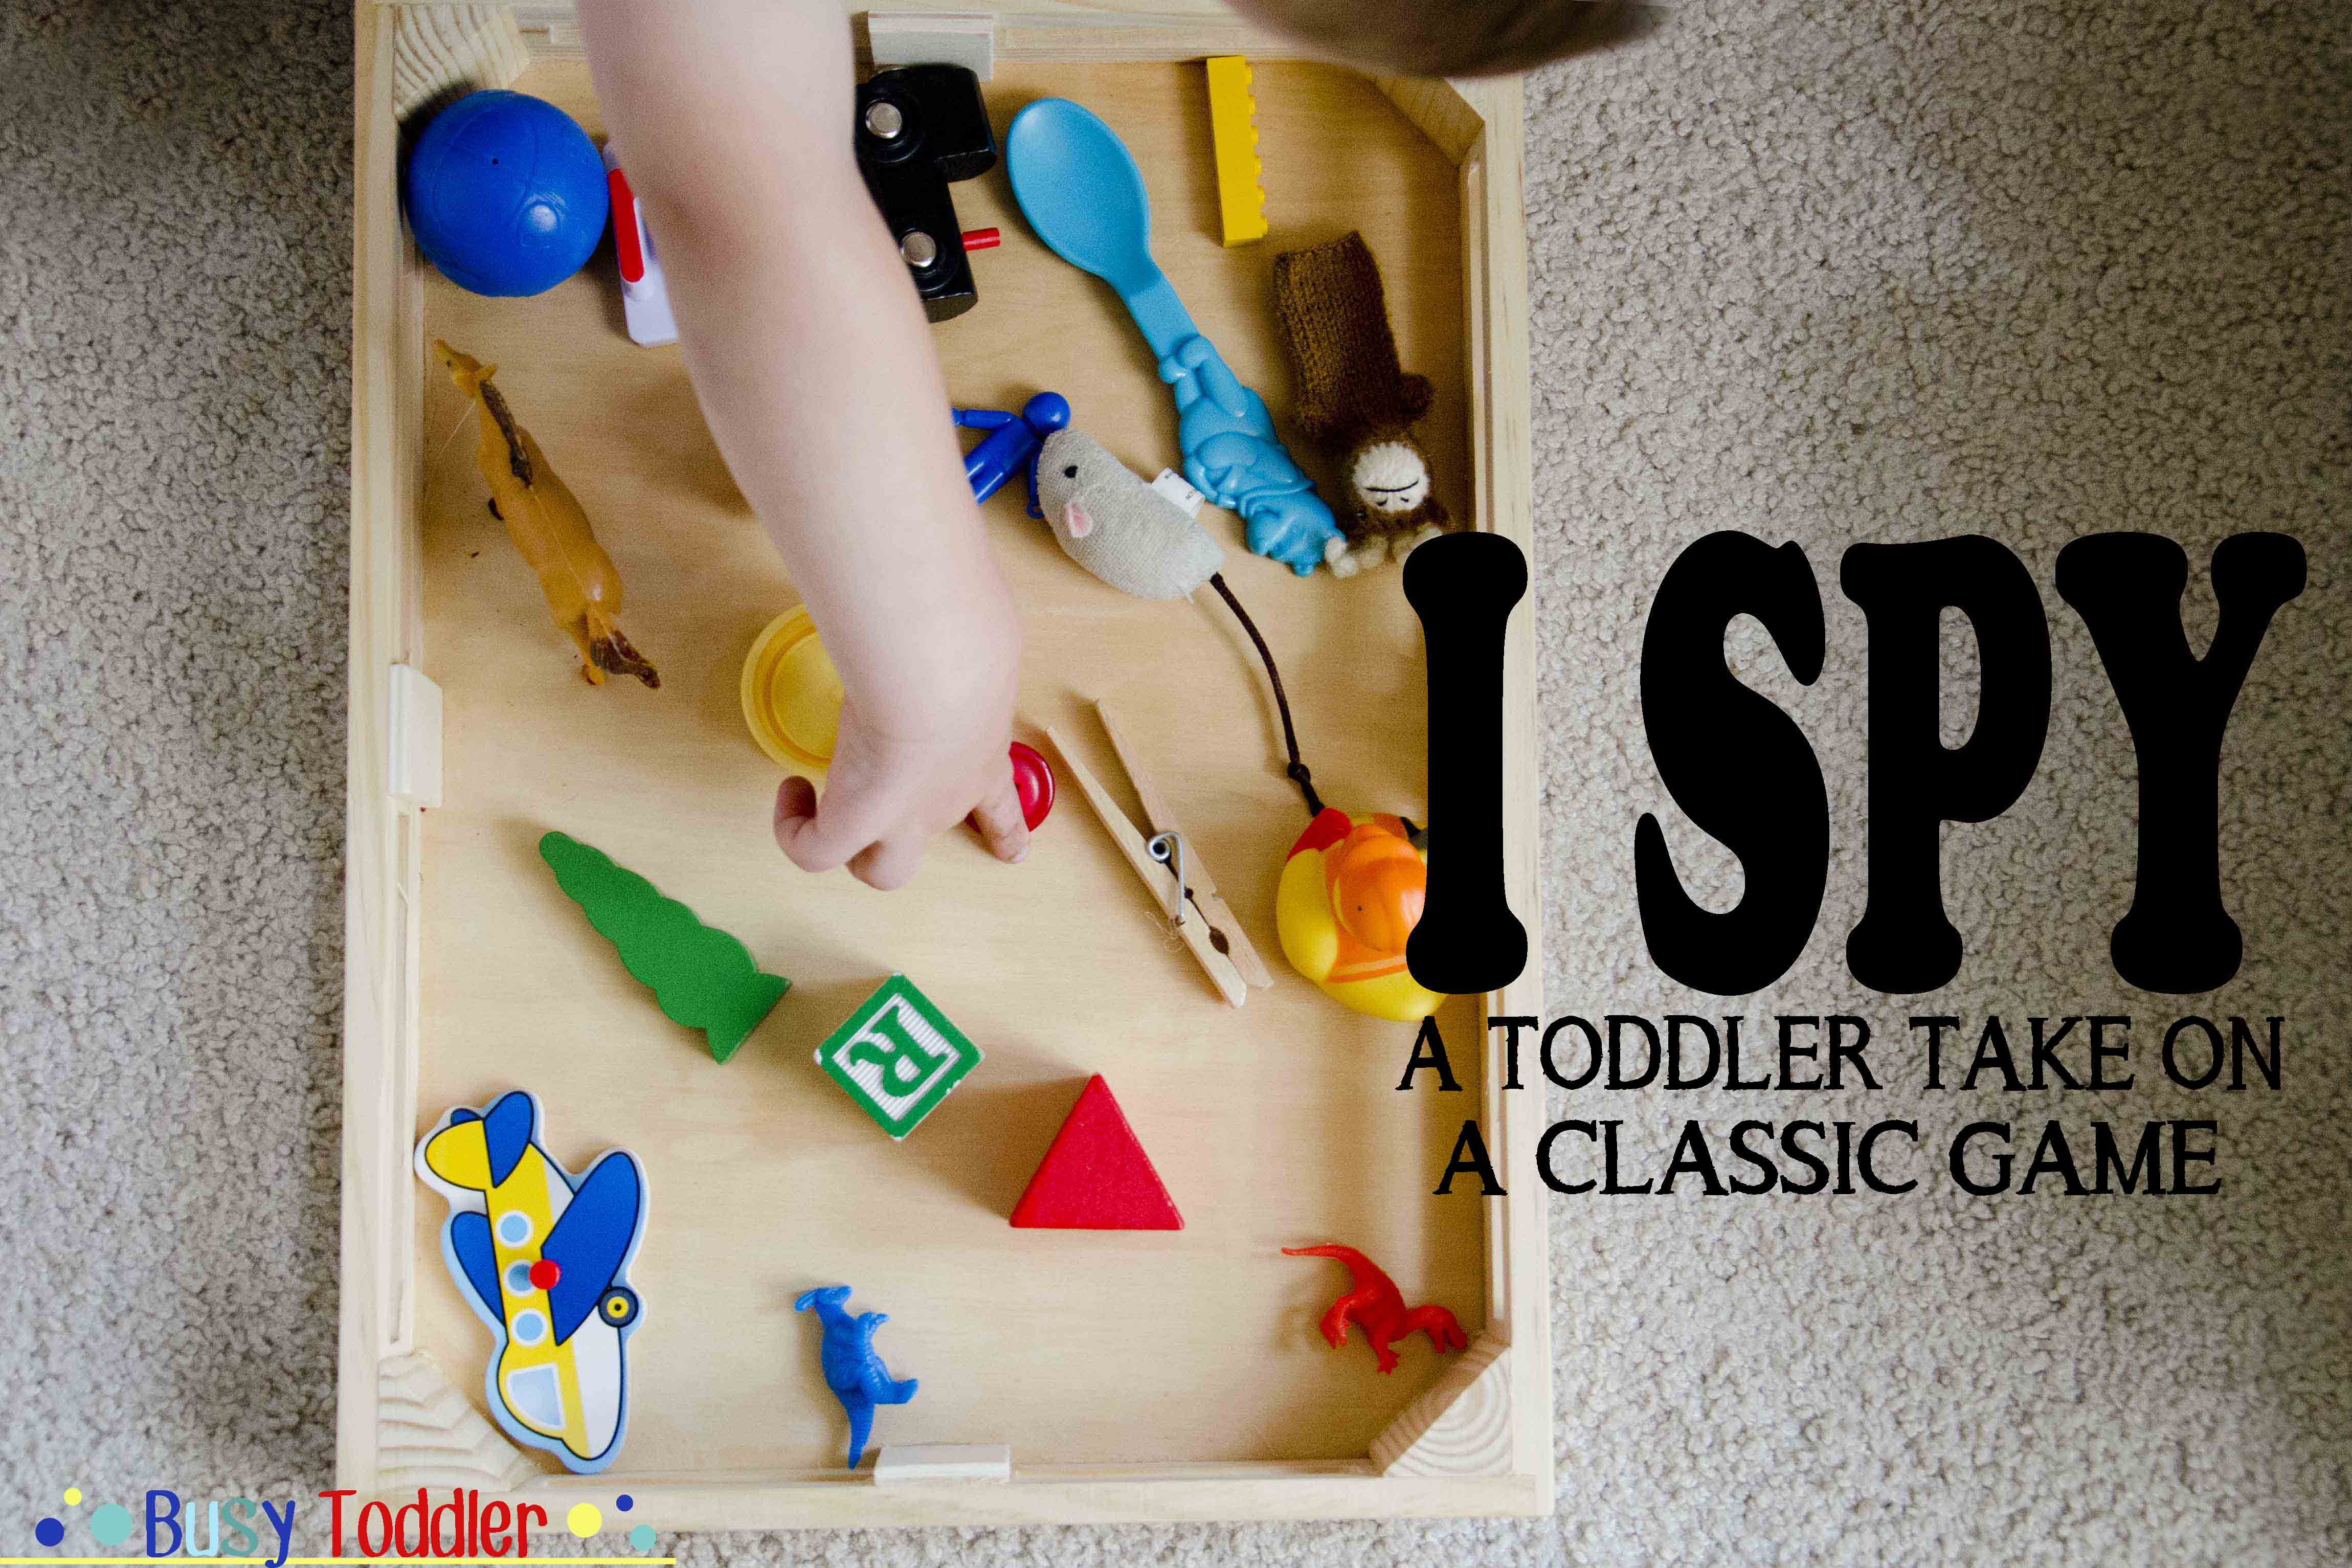 I Spy: a toddler take on a classic game